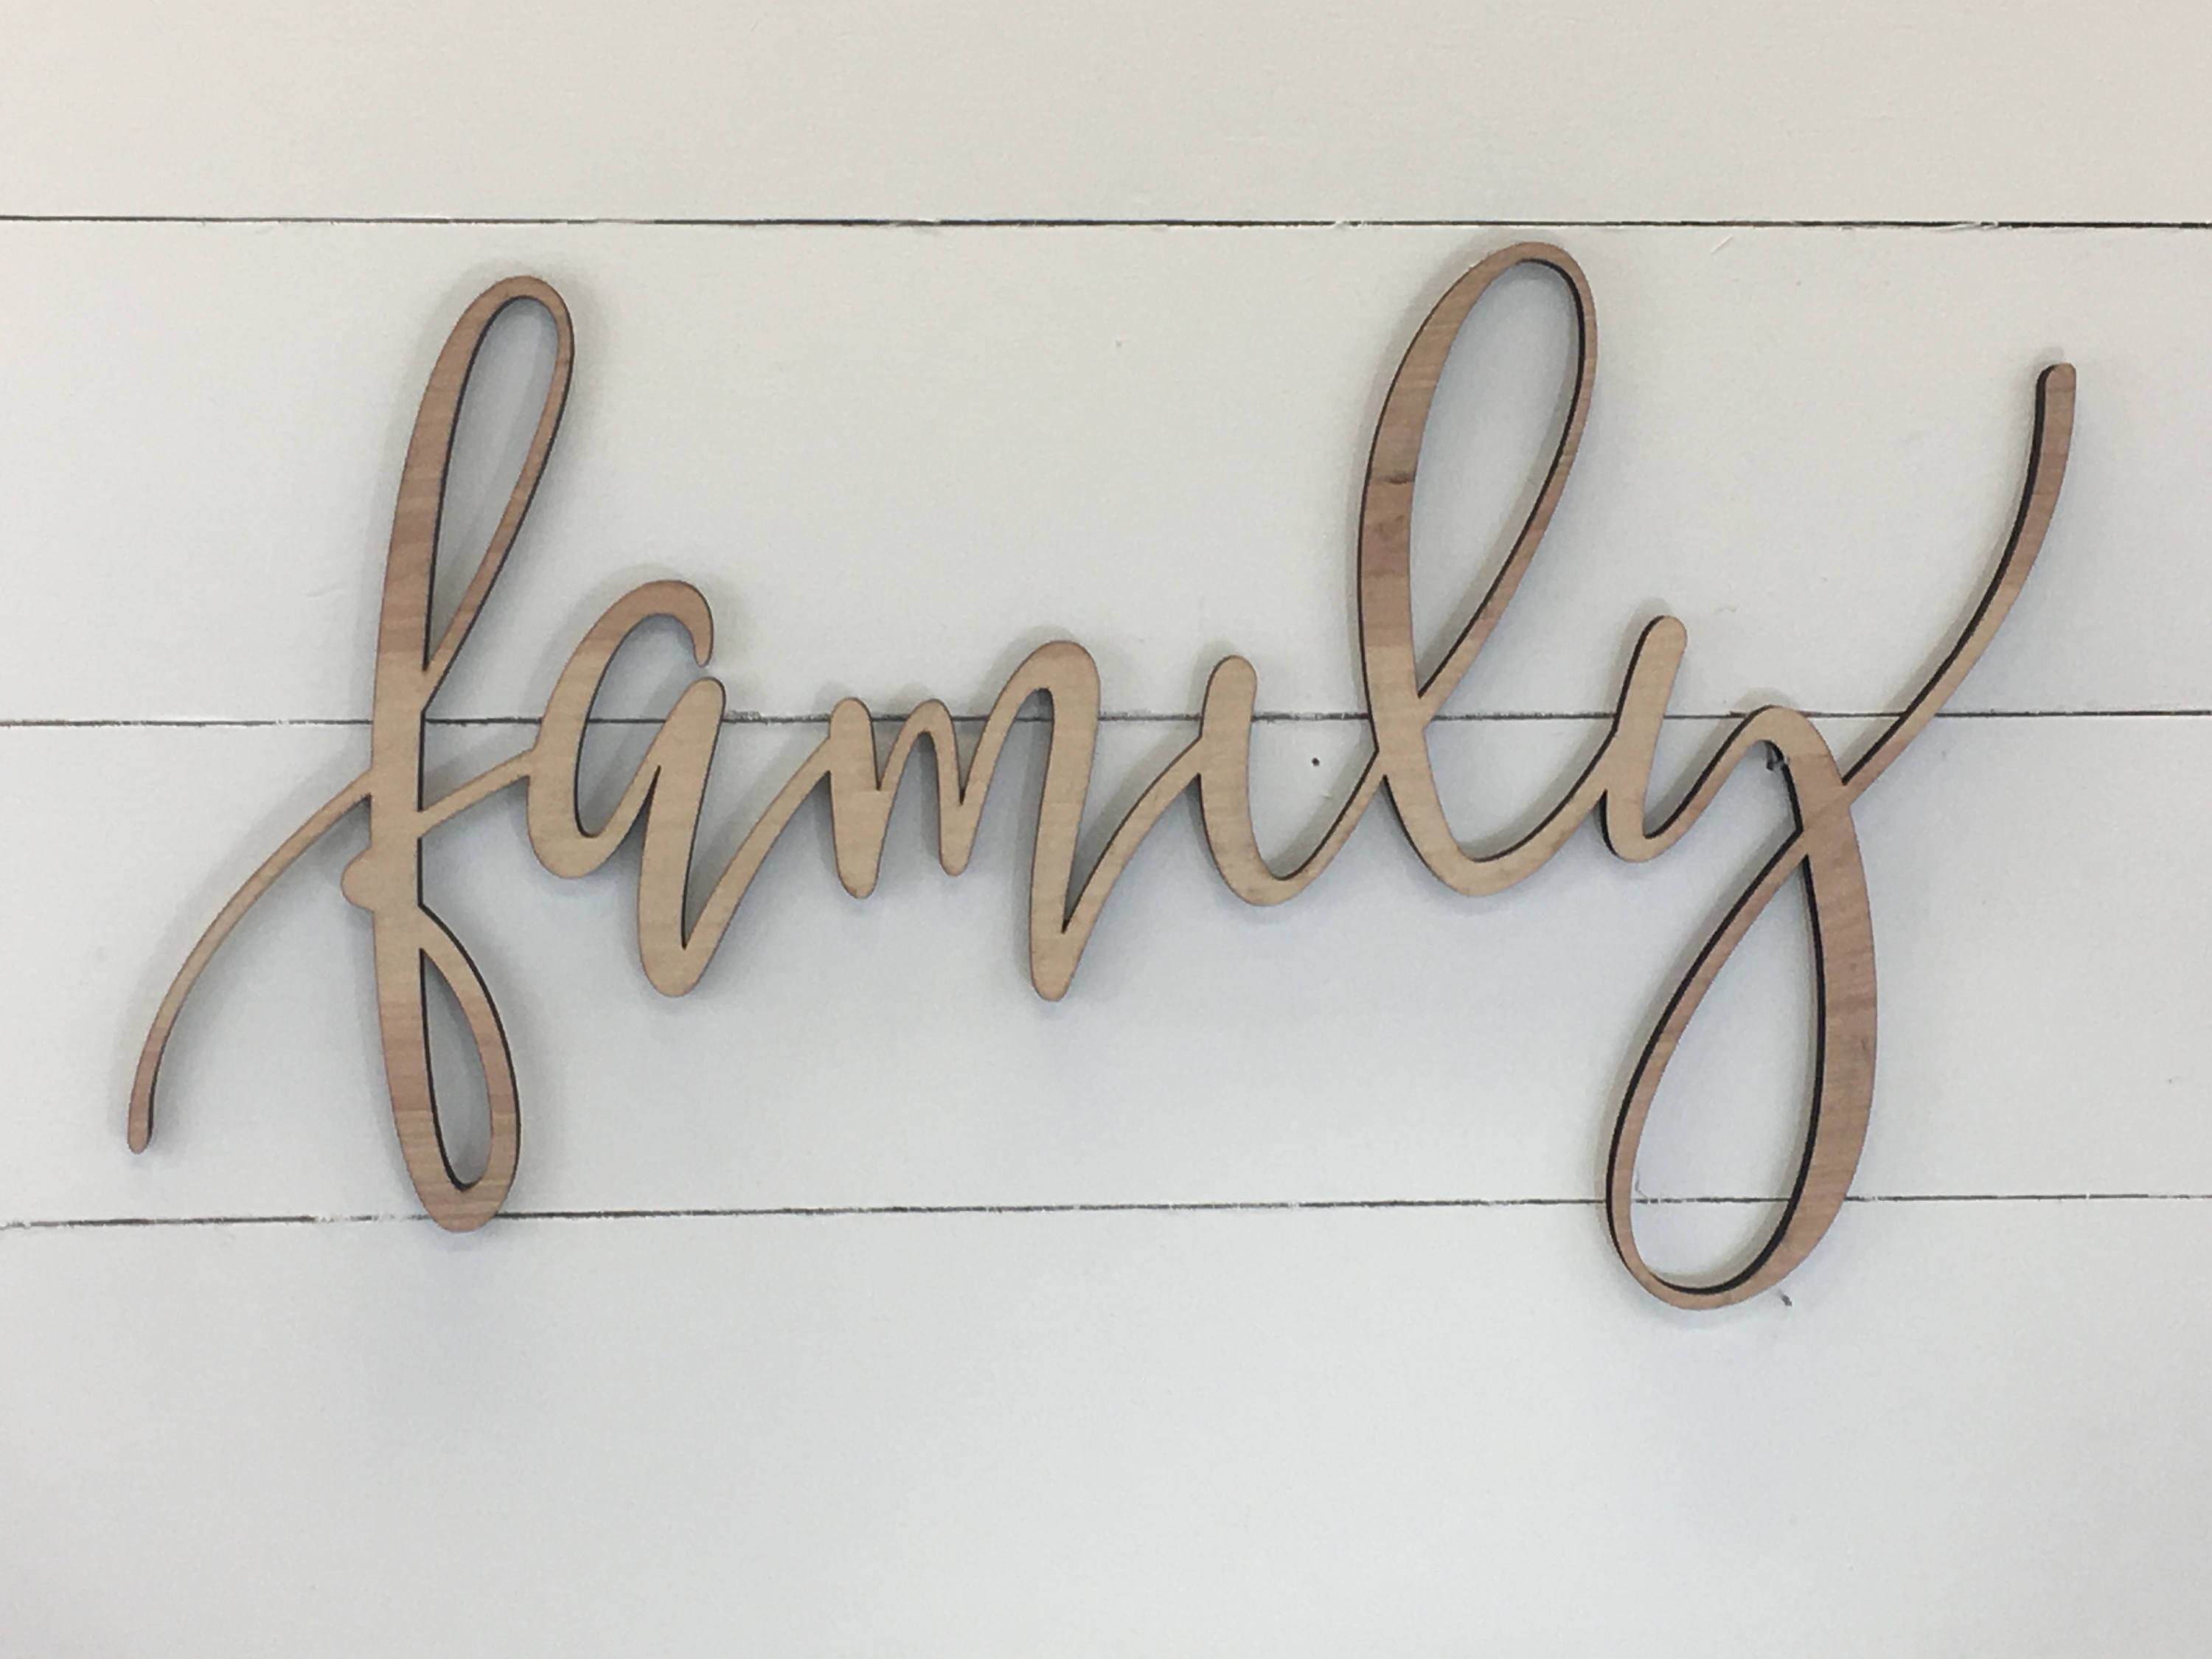 Items Similar To Just Smile Wooden Words Decorative Wood Letters With Newest Wooden Words Wall Art (View 6 of 30)